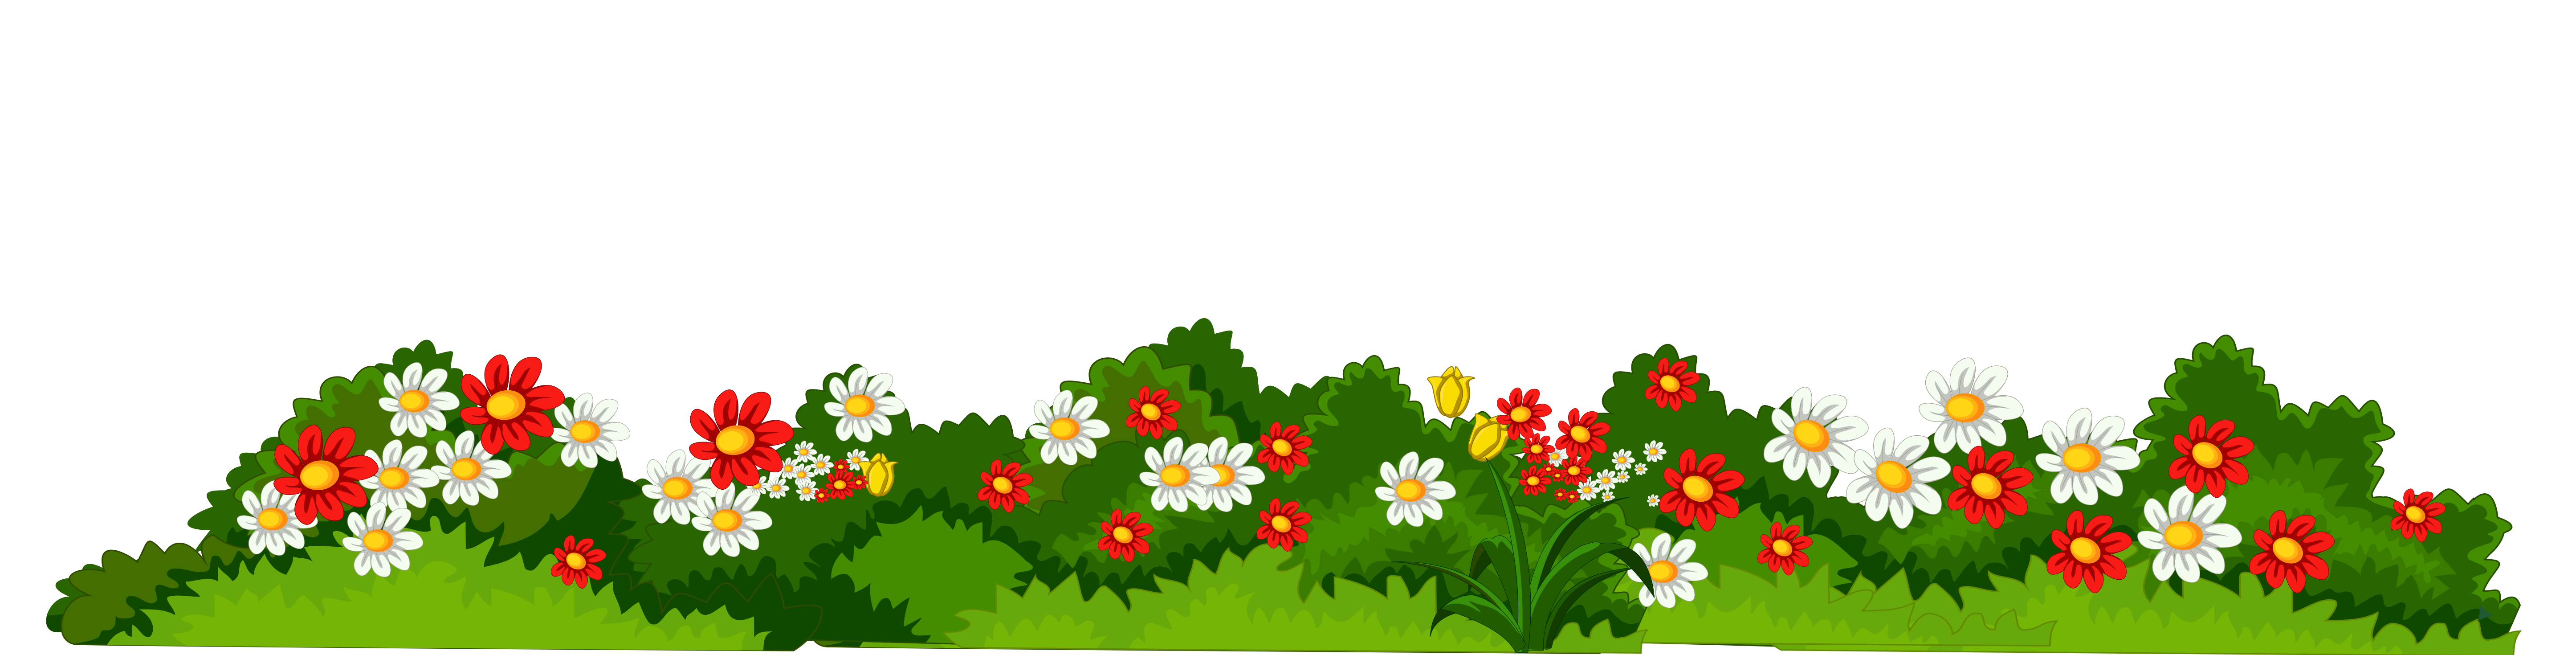 Flowers with Grass Transparent PNG Clipart Garden images